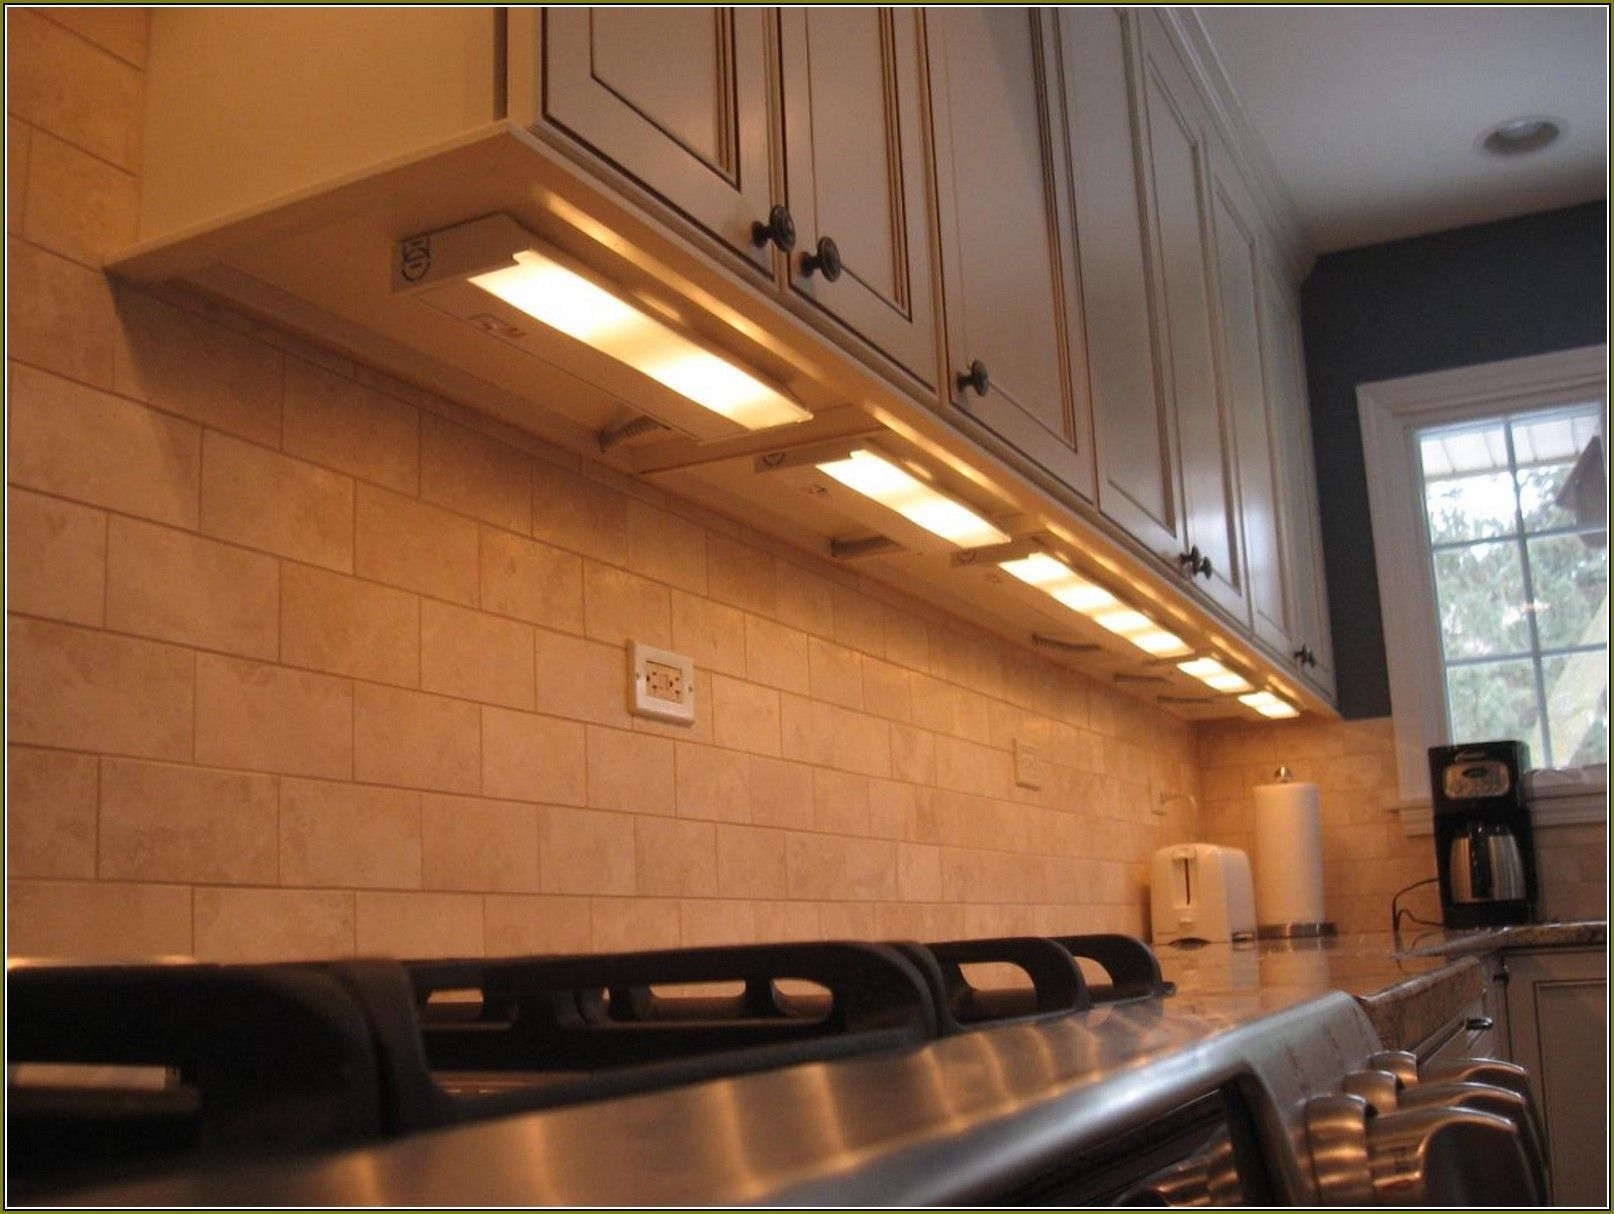 120 Volt Hardwire Under Cabinet Lighting Light Kitchen Cabinets Under Cabinet Lighting Under Counter Lighting